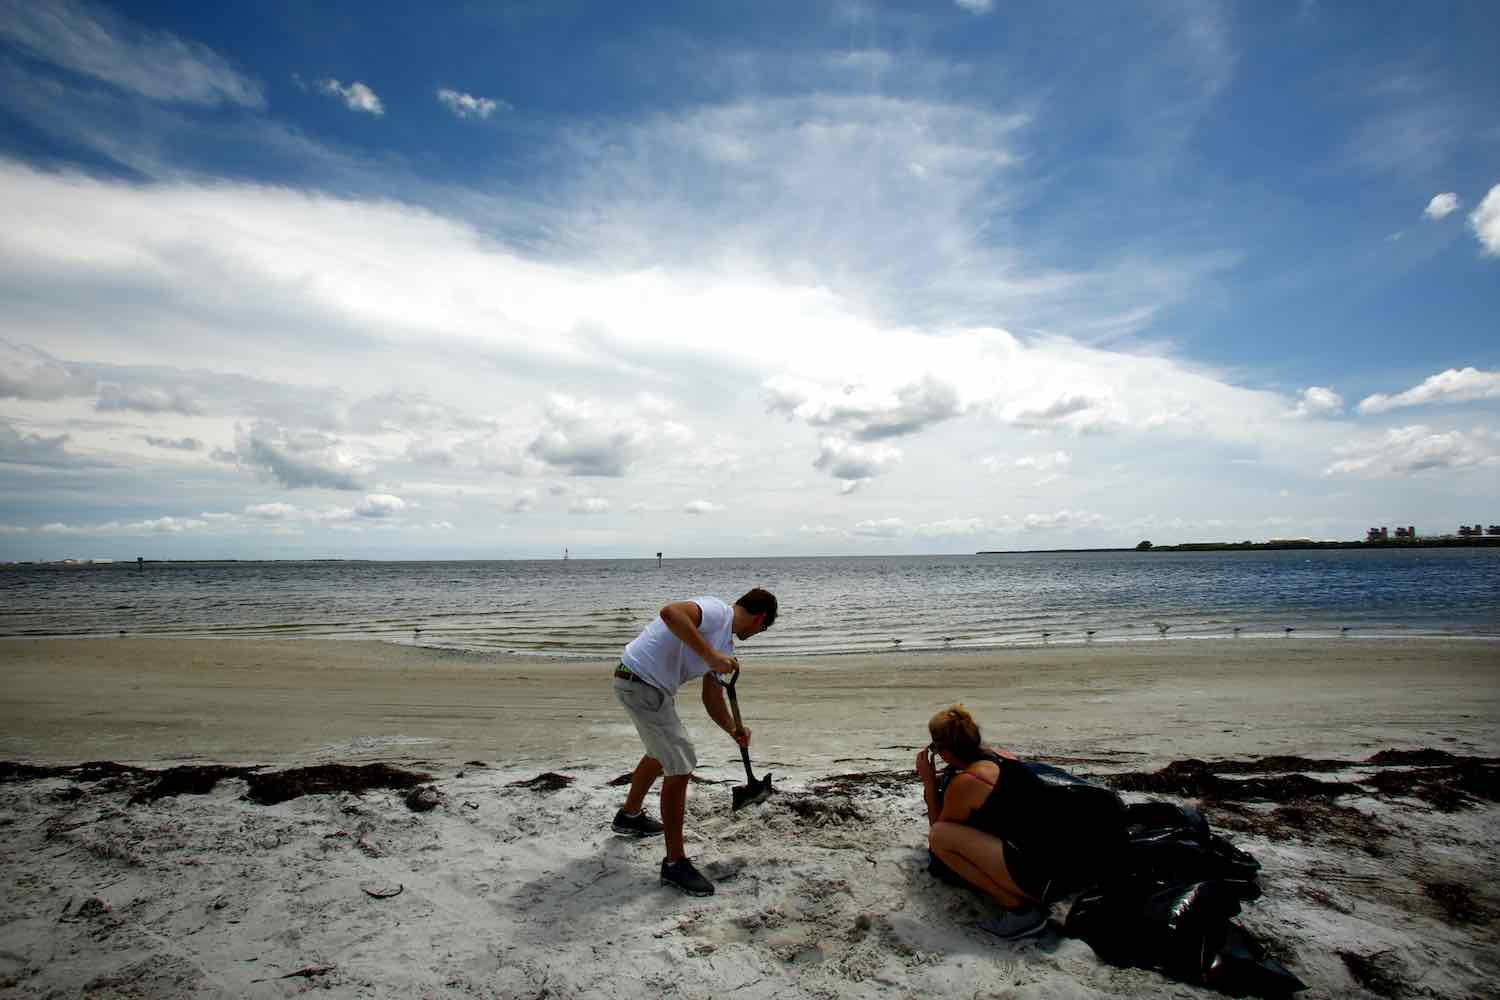 "<div class=""meta image-caption""><div class=""origin-logo origin-image kgo""><span>kgo</span></div><span class=""caption-text"">Tampa residents load sandbags with beach sand at Gandy Beach as residents and visitors in Florida prepare for, and evacuate ahead of, Hurricane Irma on September 09, 2017. (Brian Blanco/Getty)</span></div>"